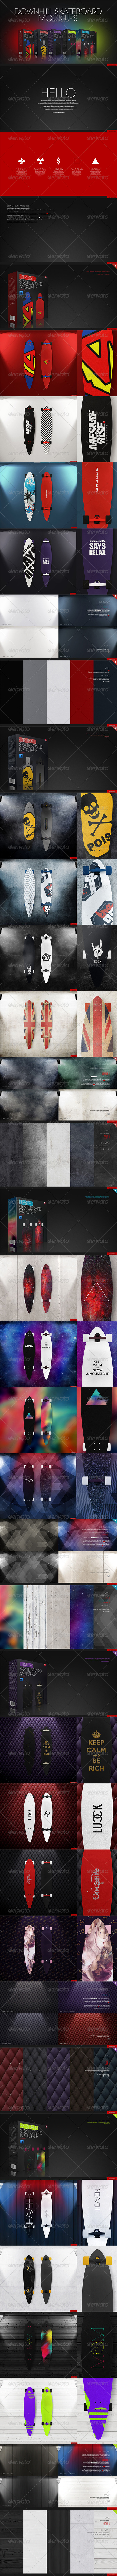 GraphicRiver Longboard Skateboard Type 1 5 Scenes Mock-up 8020279